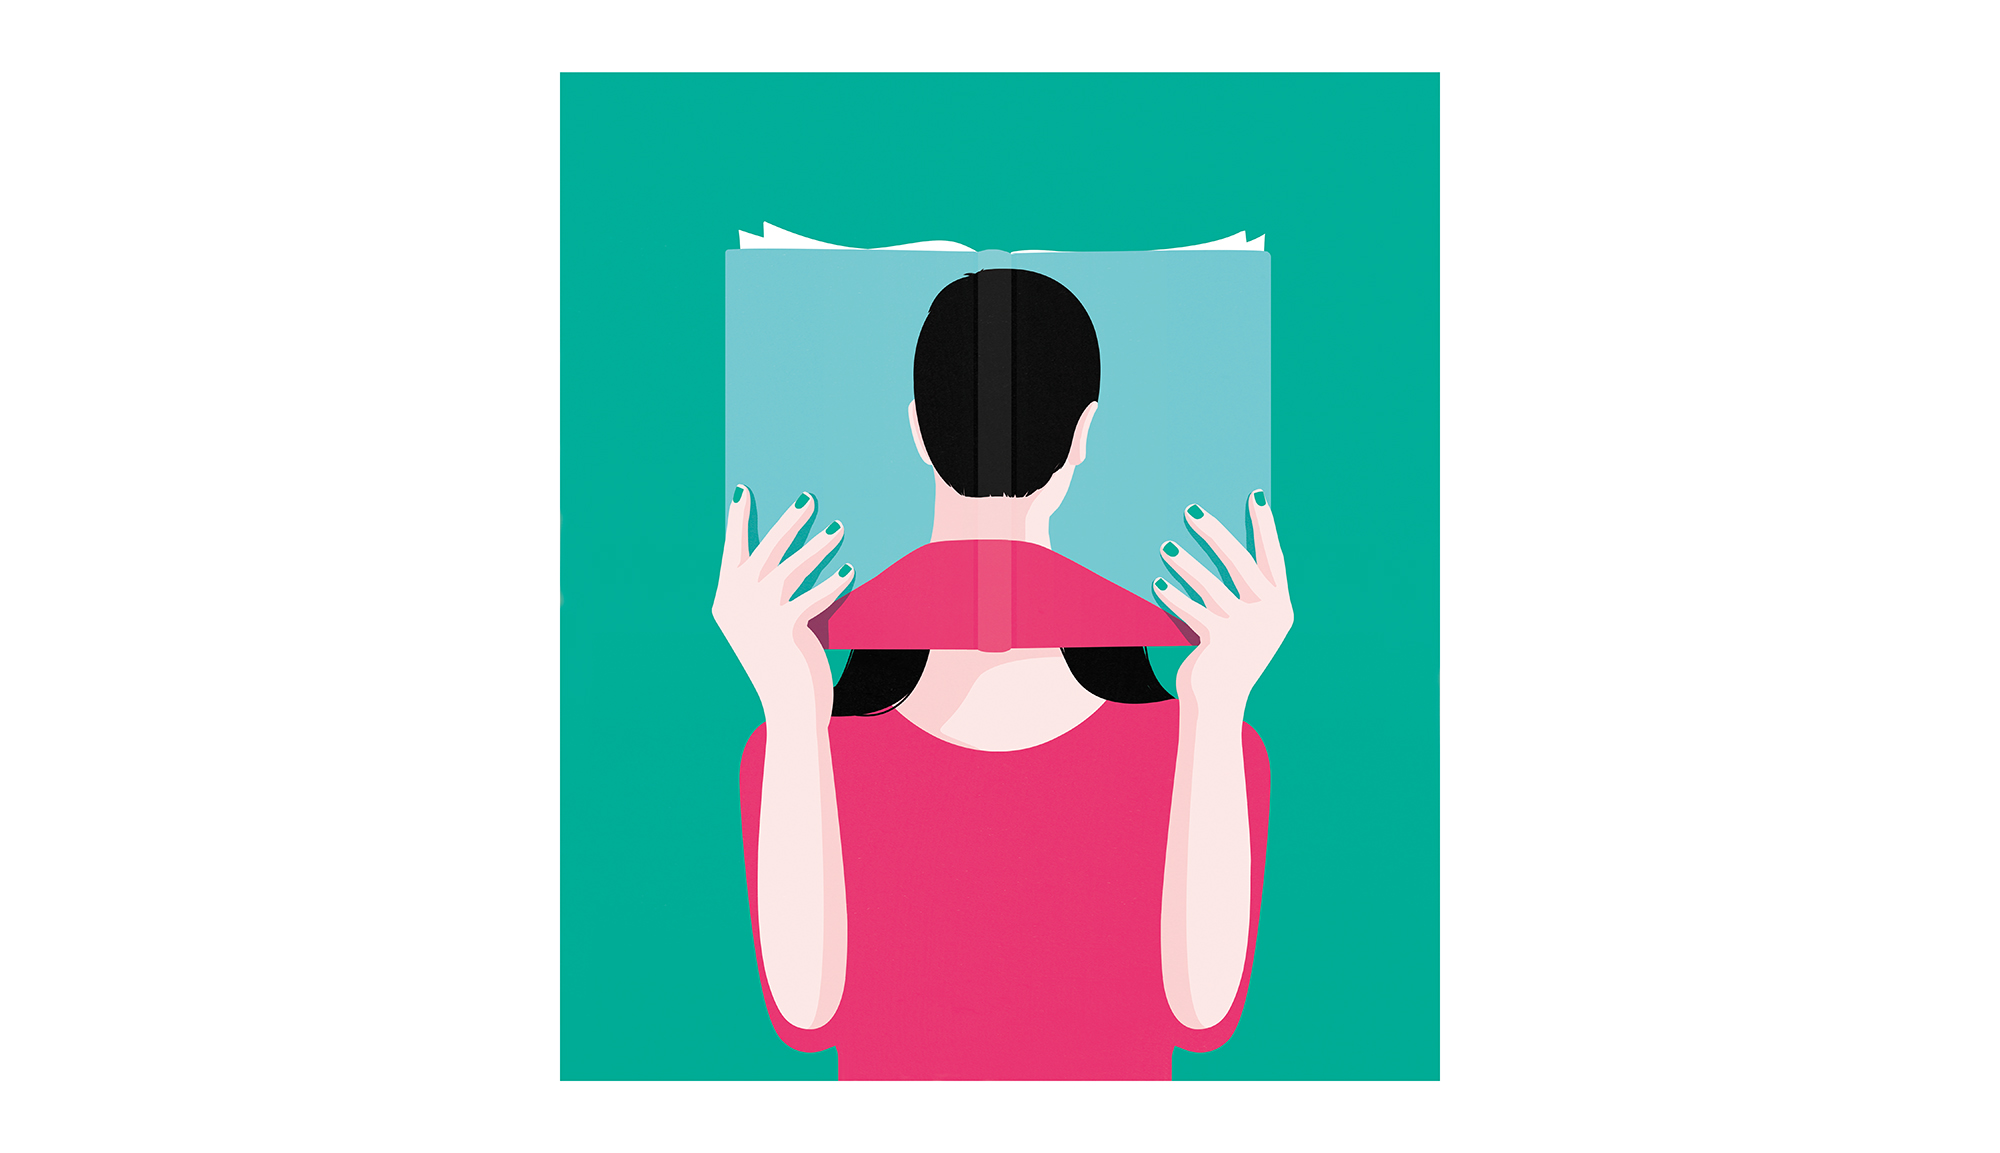 Illustration: woman reading book showing back of man's head